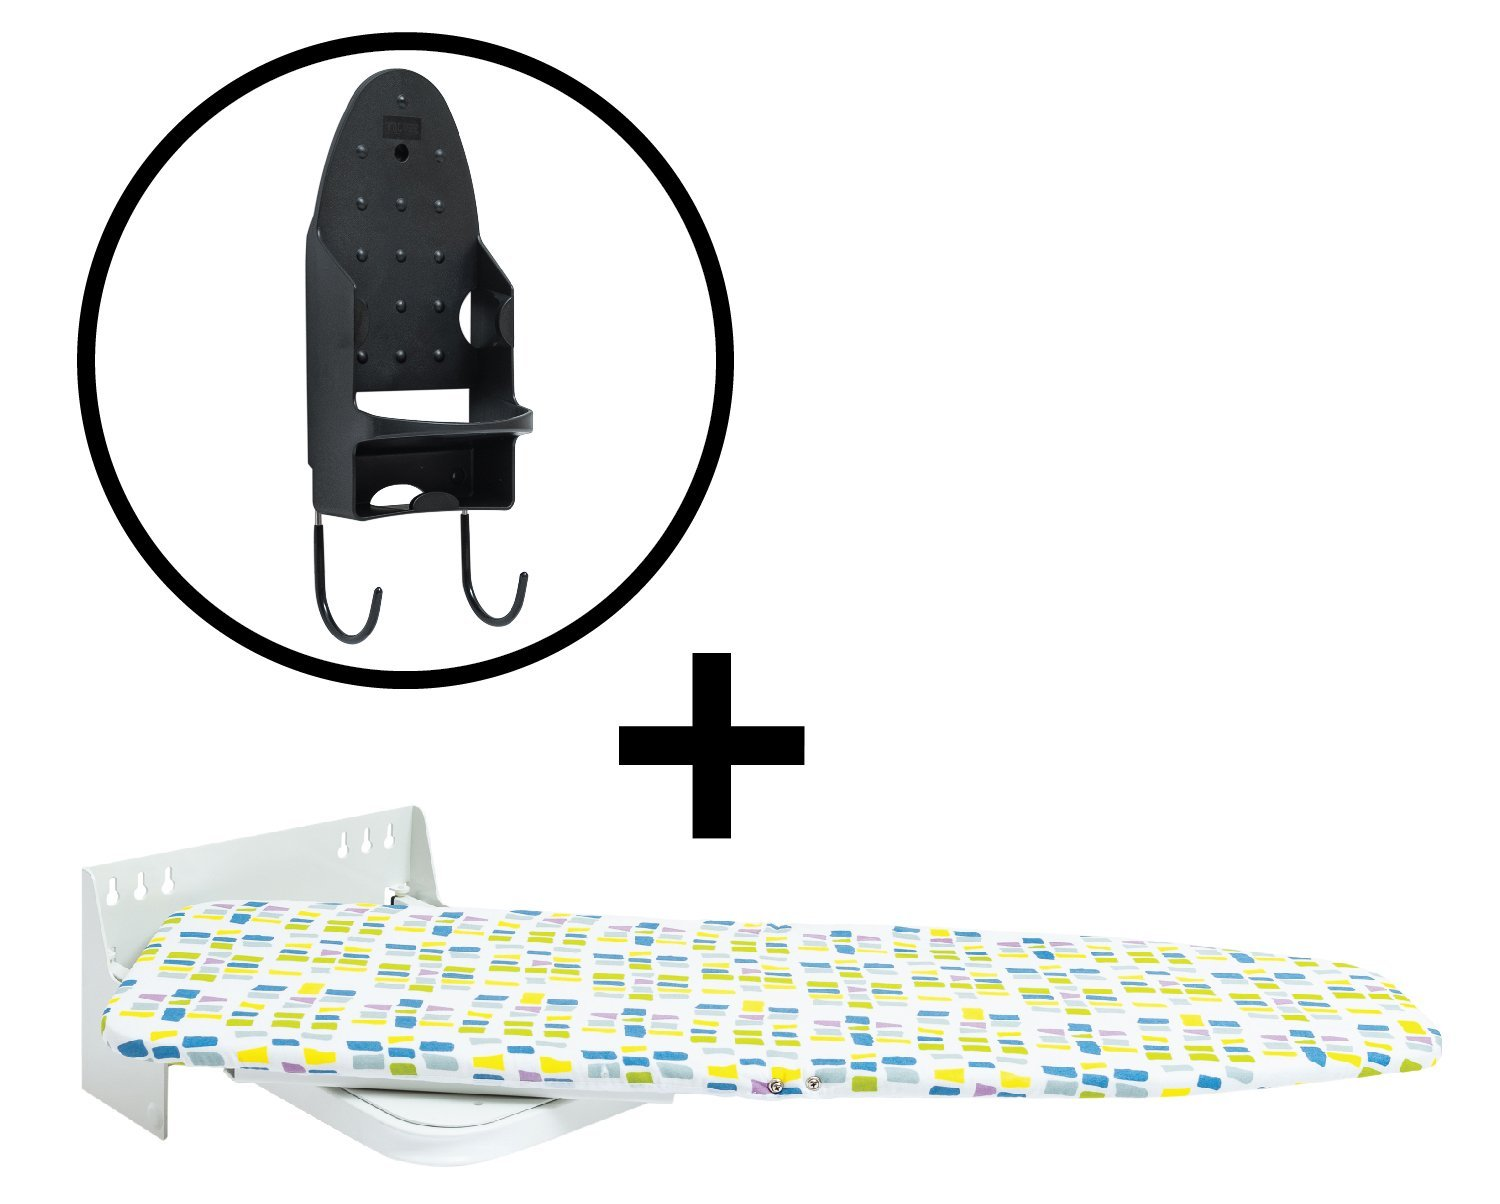 Primica Wall-Mounted Ironing Board - Additional Iron Rest - Durable, Safe and Stable - Easy to Mount and Use - Swivels 90° in Both Directions - Stylish Design